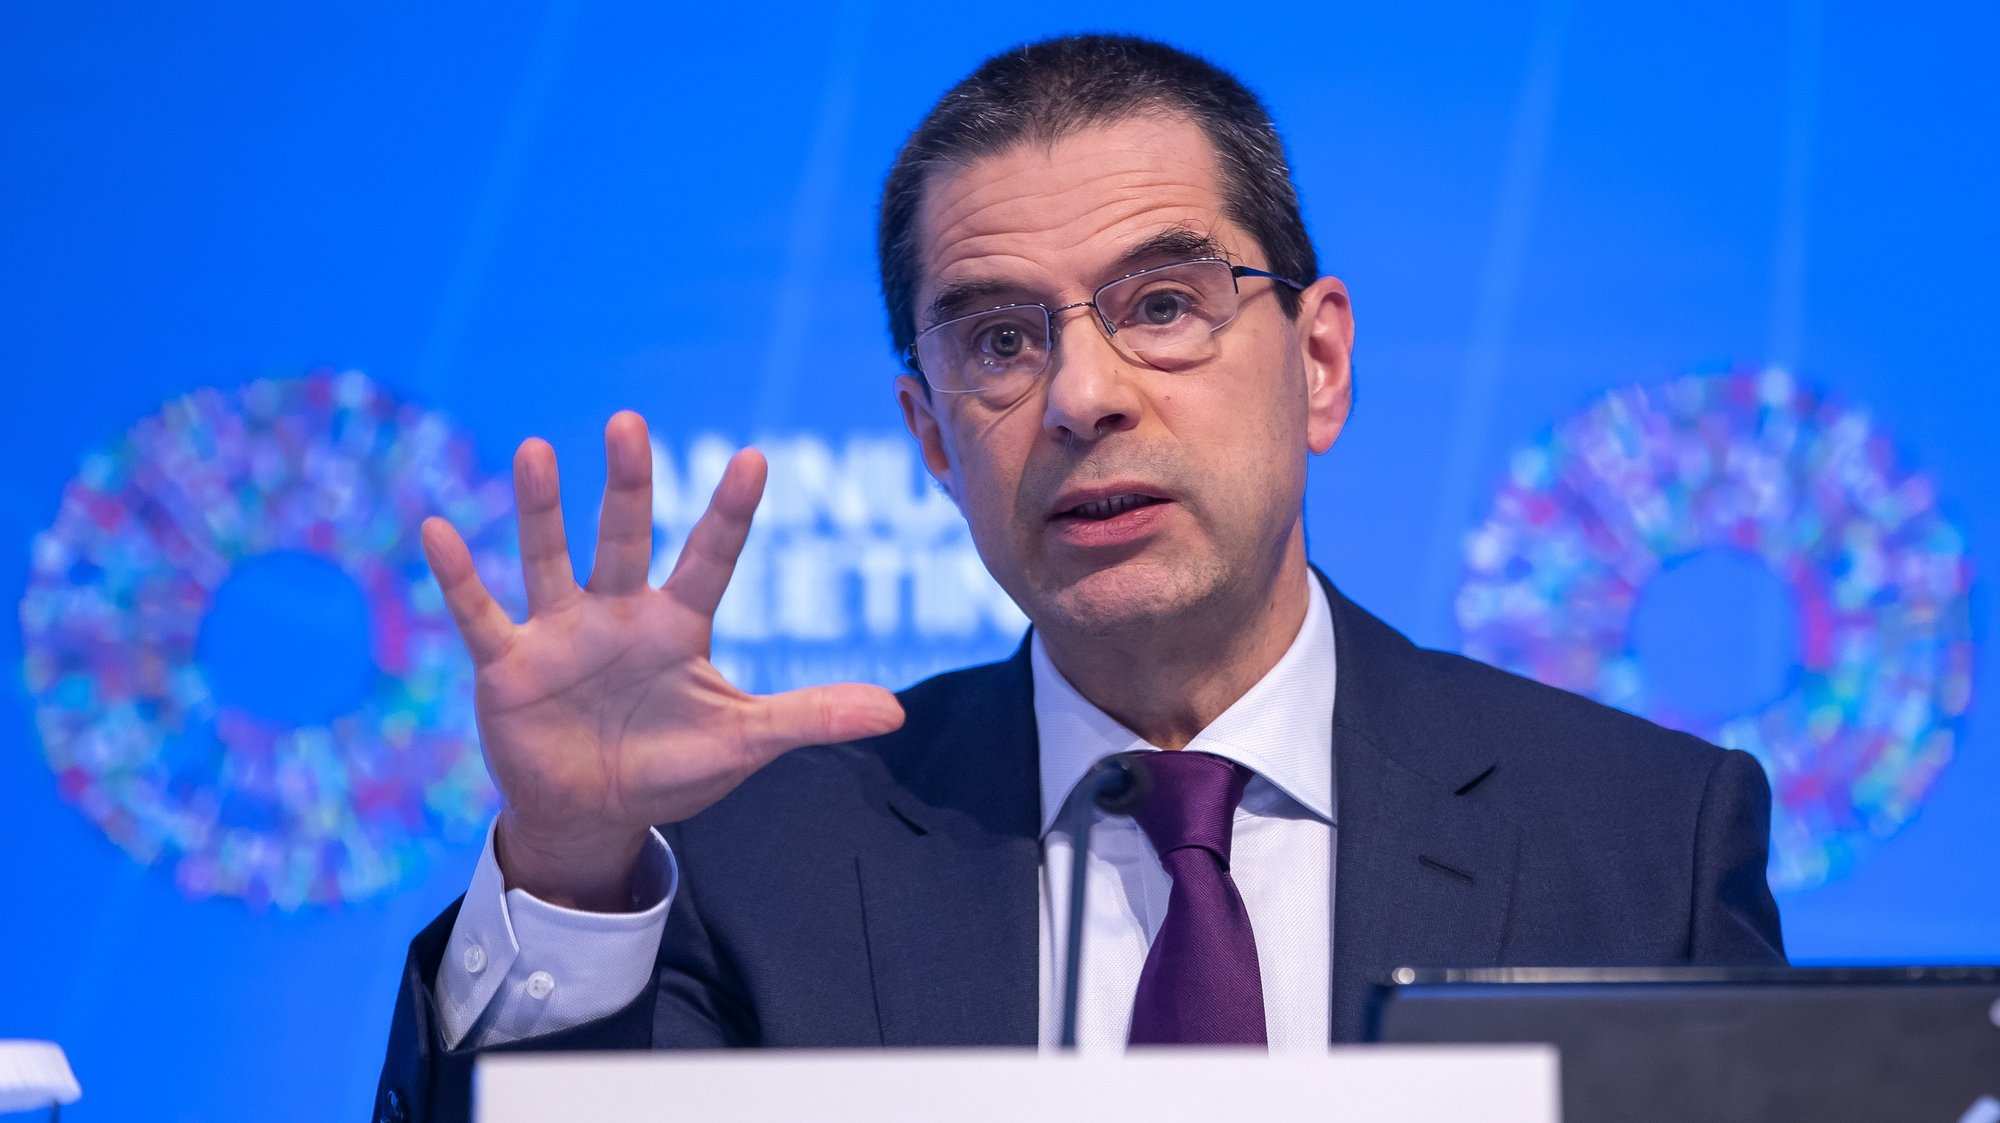 epa07925580 Vitor Gaspar, director of the Fiscal Affair Department at the International Monetary Fund participates in the Fiscal Monitor press briefing at the IMF Headquarters in Washington, DC, USA, 16 October 2019.  EPA/ERIK S. LESSER